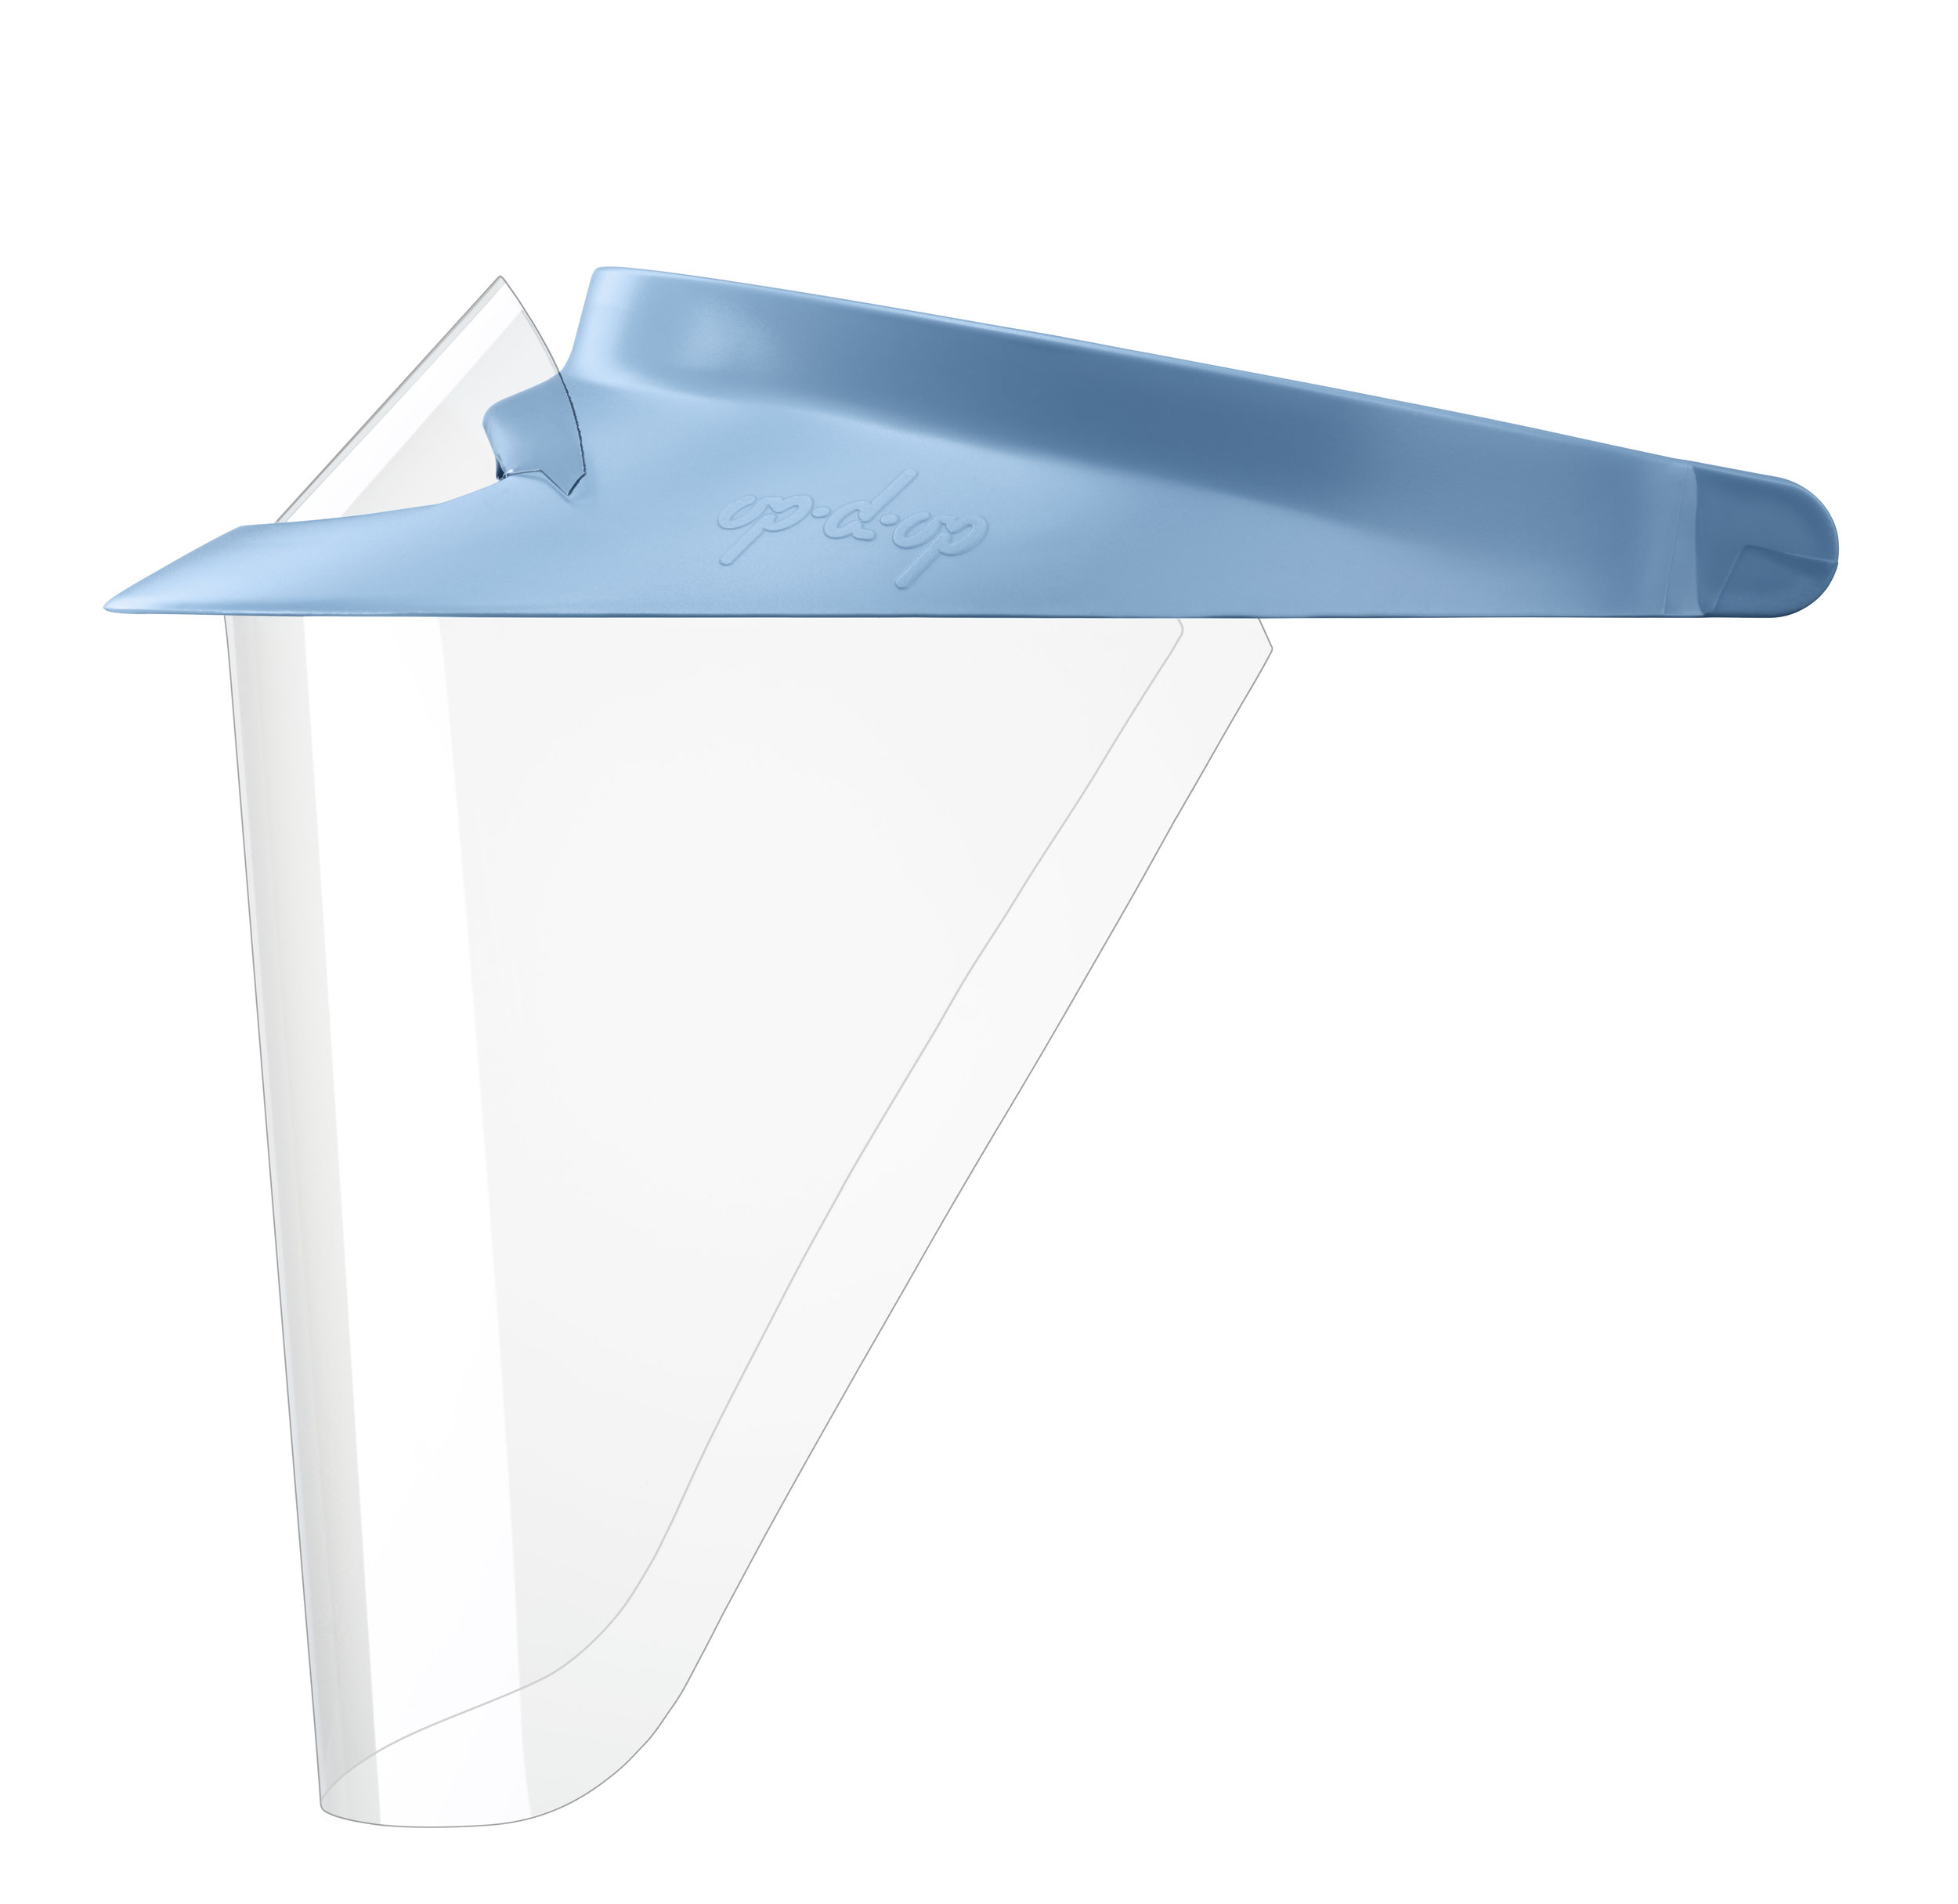 THE ABS -  SIMPLE + STREAMLINEDAVAILABLE IN FOUR SIZES SMALL, MEDIUM, LARGE OR EXTRA-LARGEREUSABLE, REPLACEABLE SHIELDS